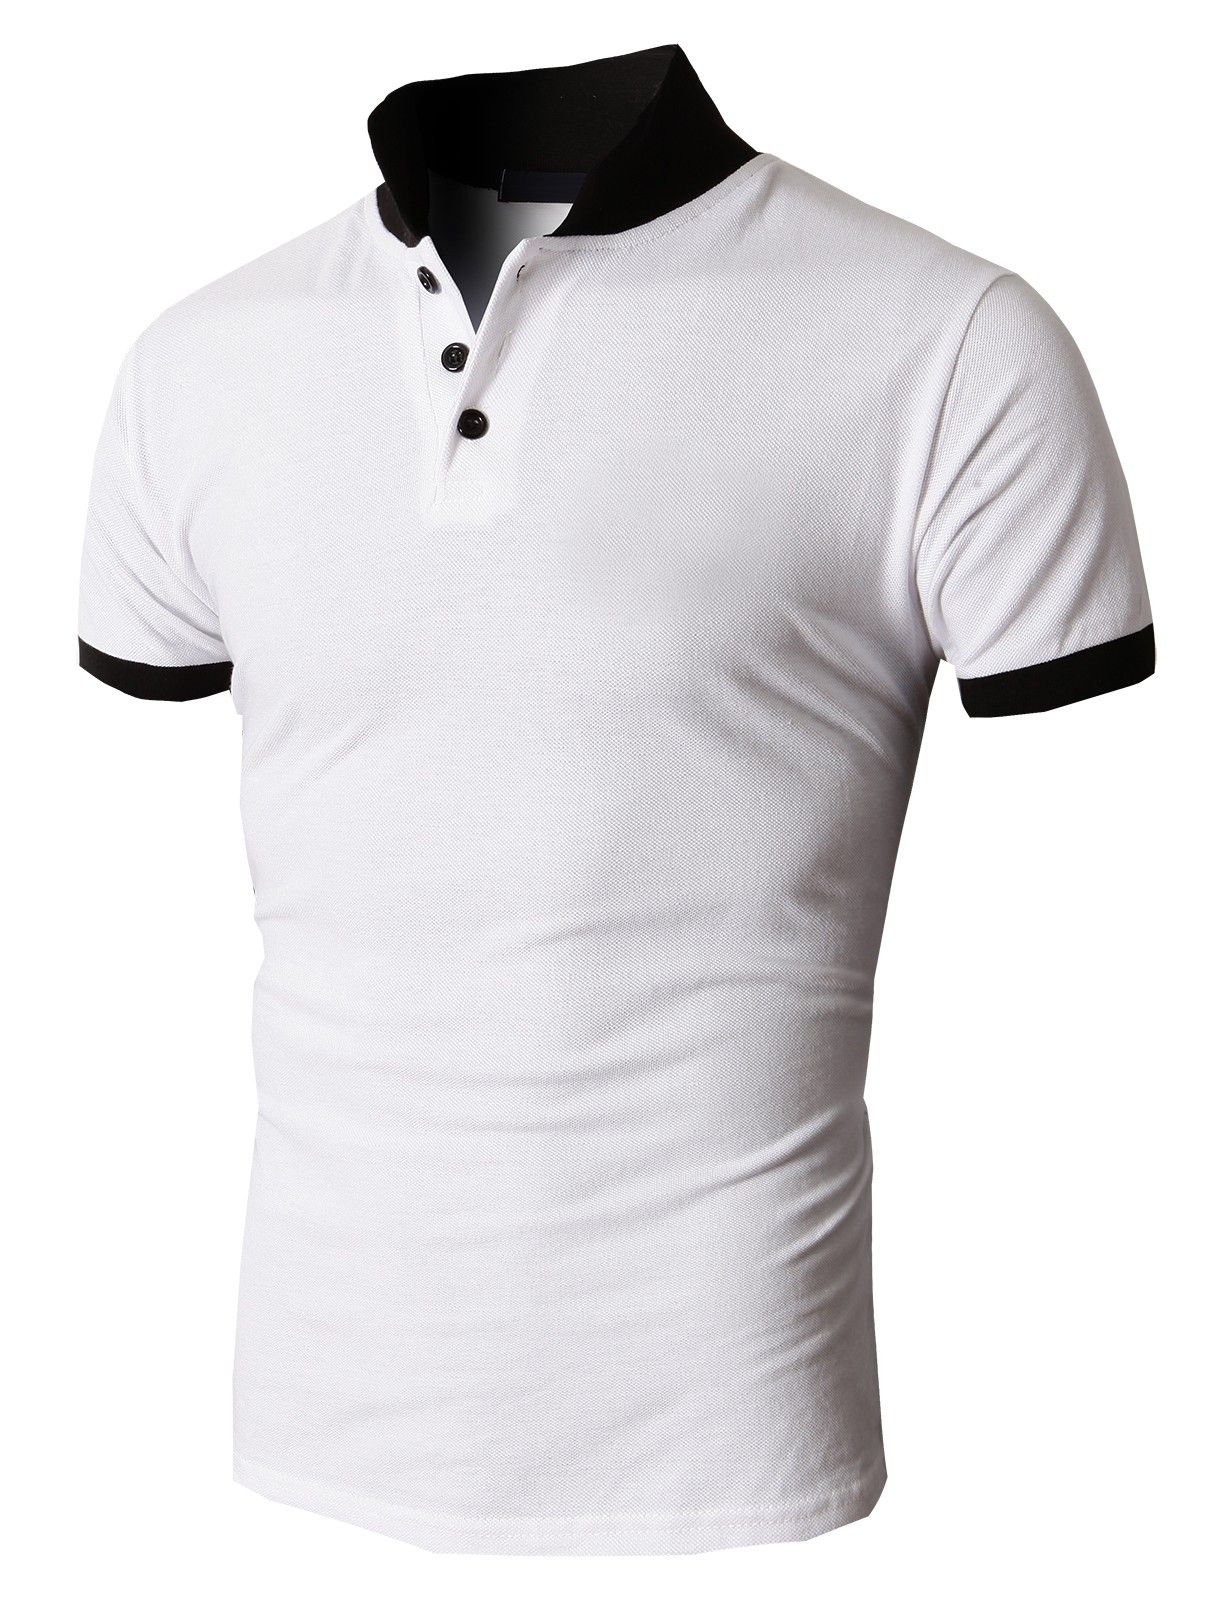 8ae5aef0d Doublju Men's Pique Polo-shirts Three Buttons Closer with Two Tone Collar  (KMTTS035) #doublju